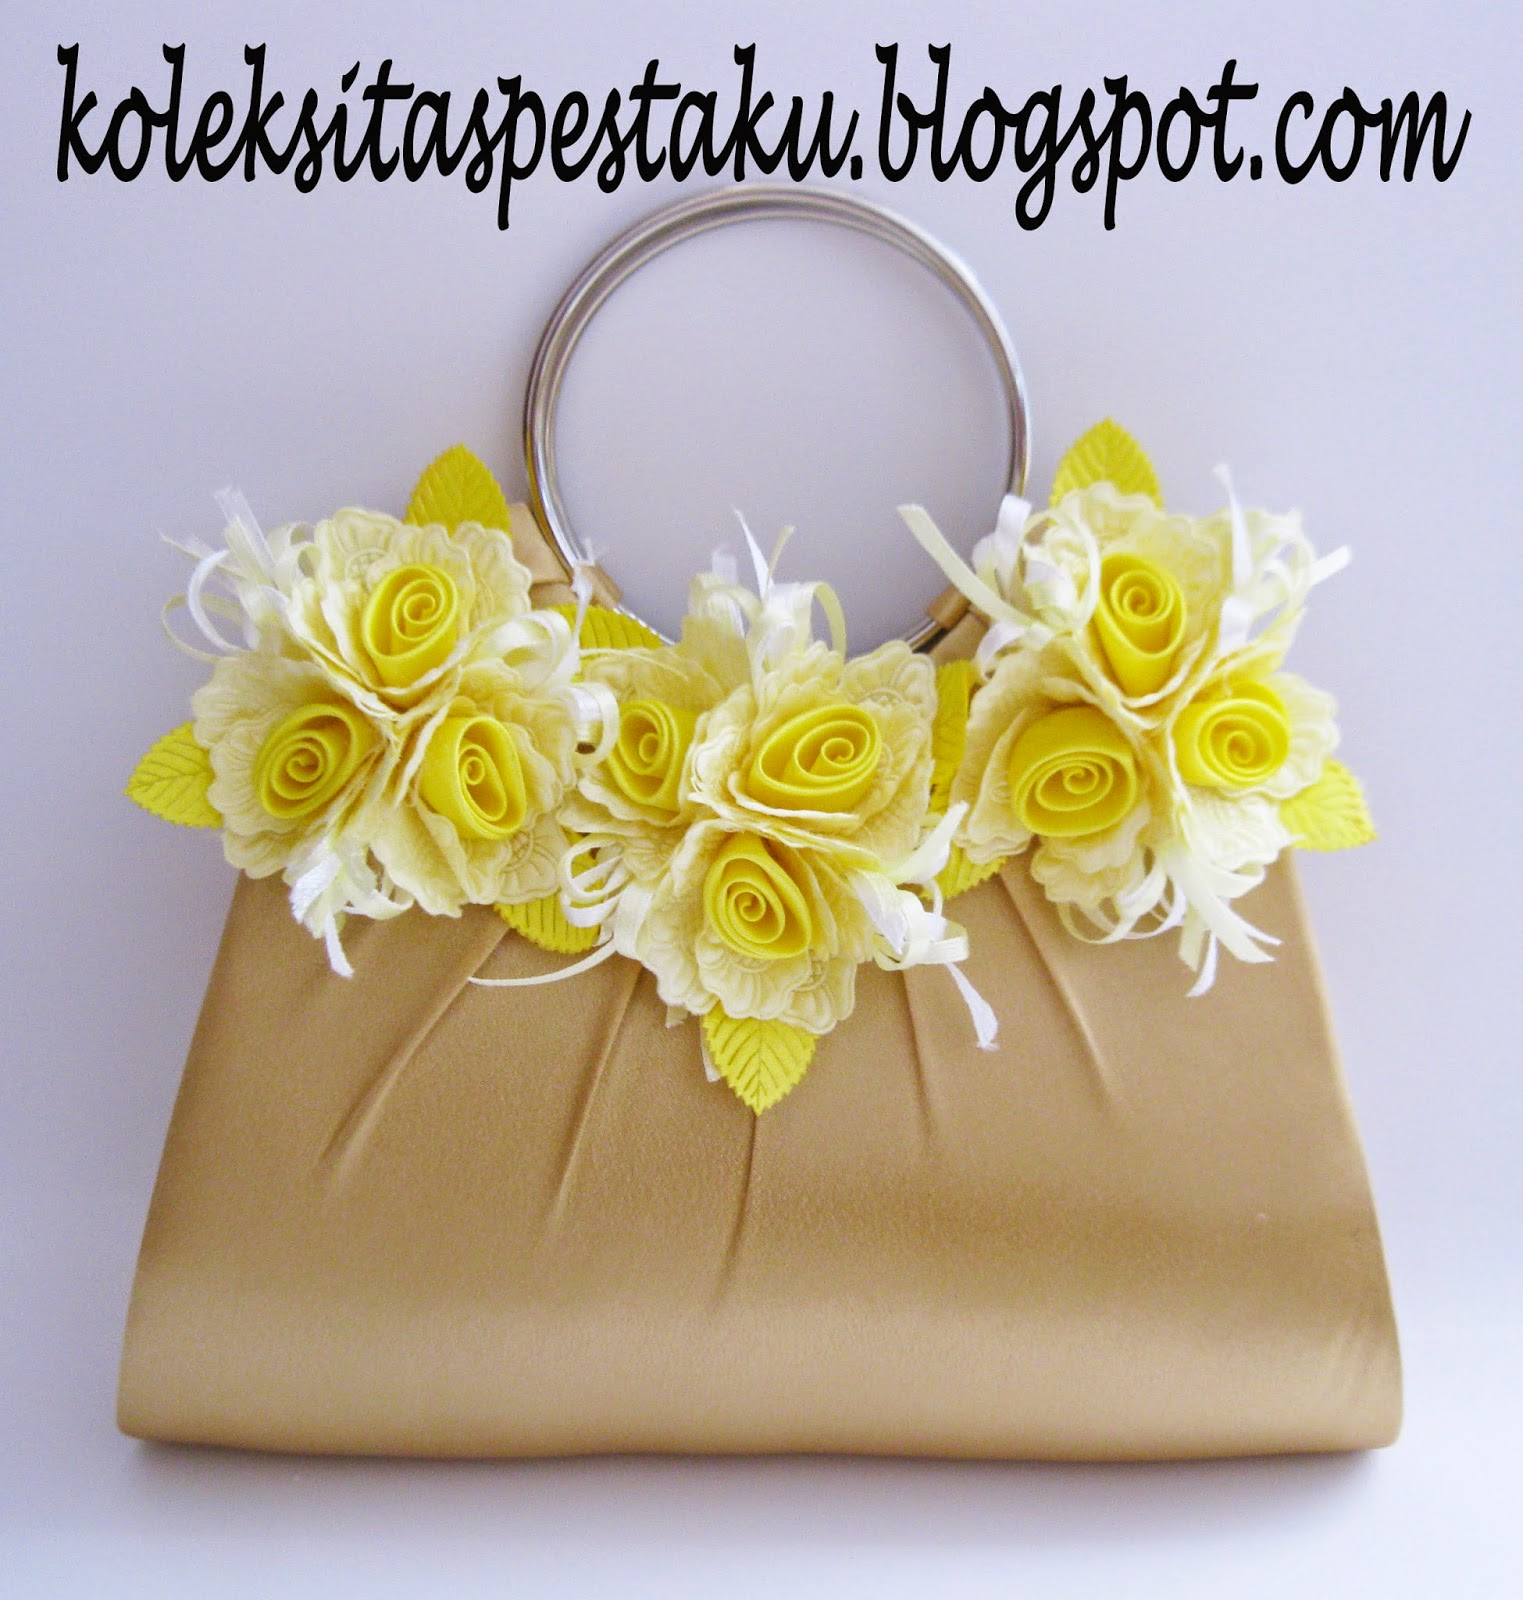 Clutch Bag Dompet Tas Pesta Gold Model Bunga Cantik Unik